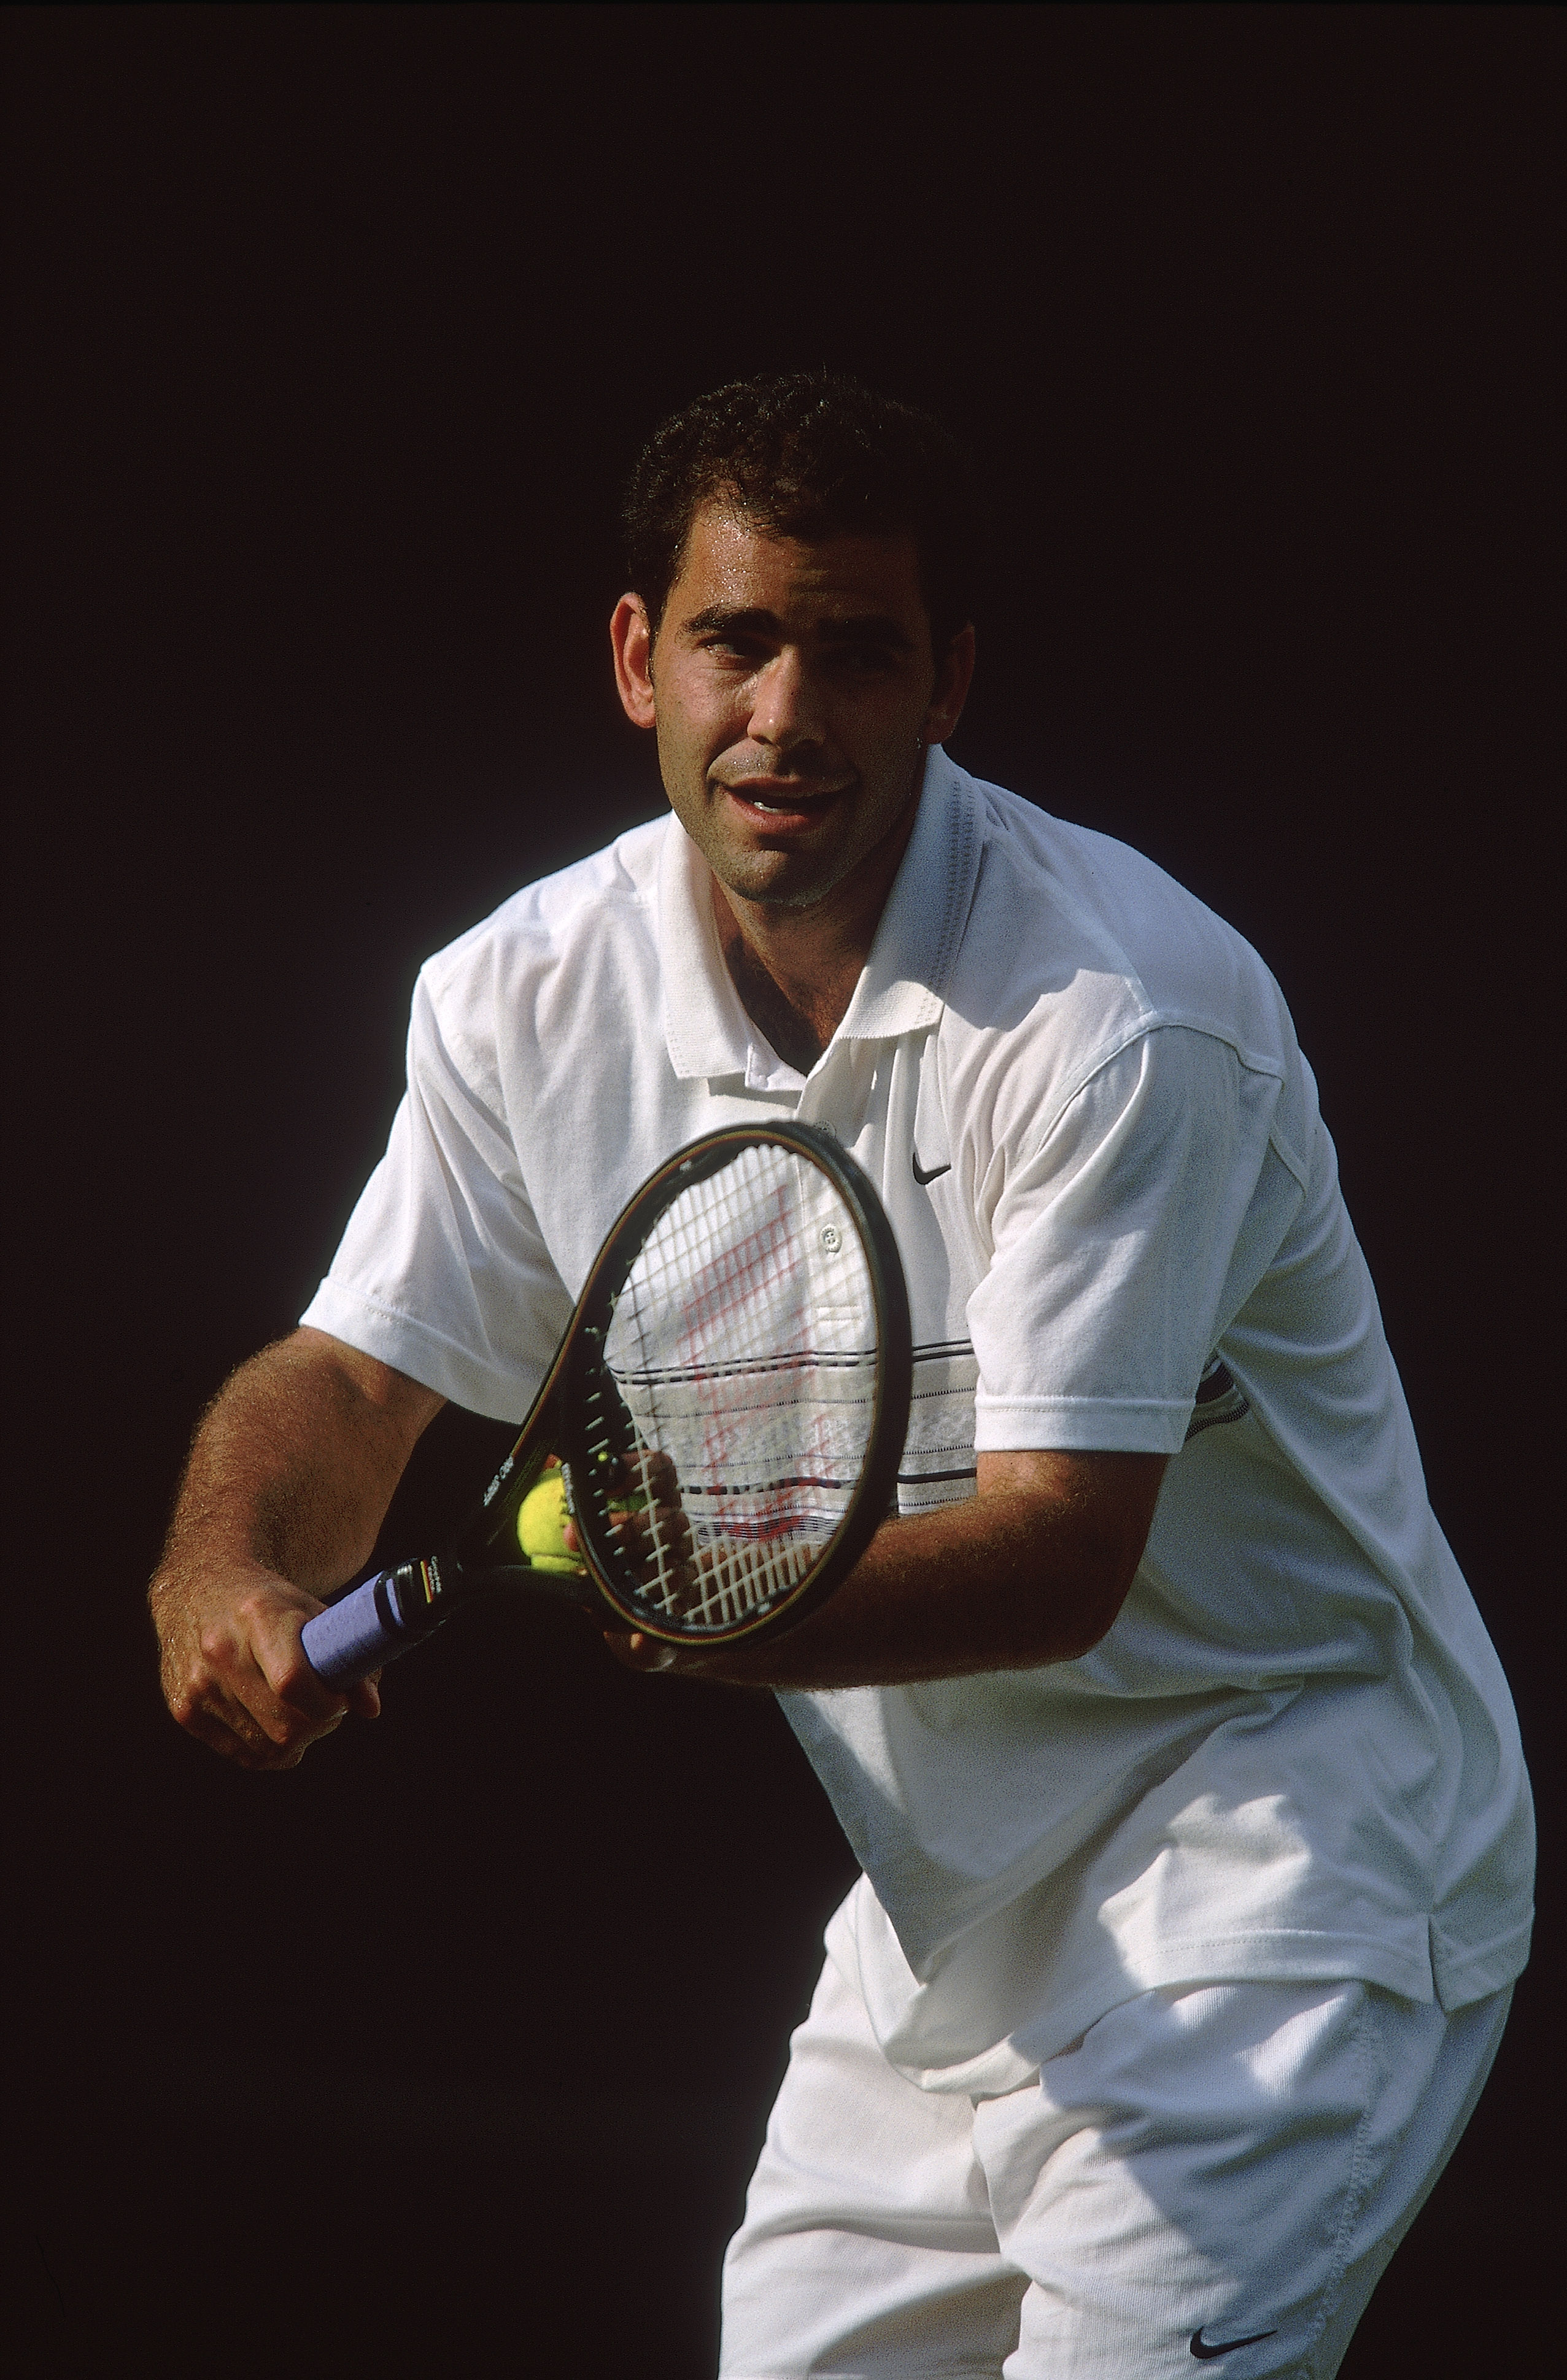 27 Jun 2001:  Pete Sampras of the USA in action during the Lawn Tennis Championships at the All England Club in Wimbledon, London. Mandatory Credit:  Gary M Prior/ Allsport